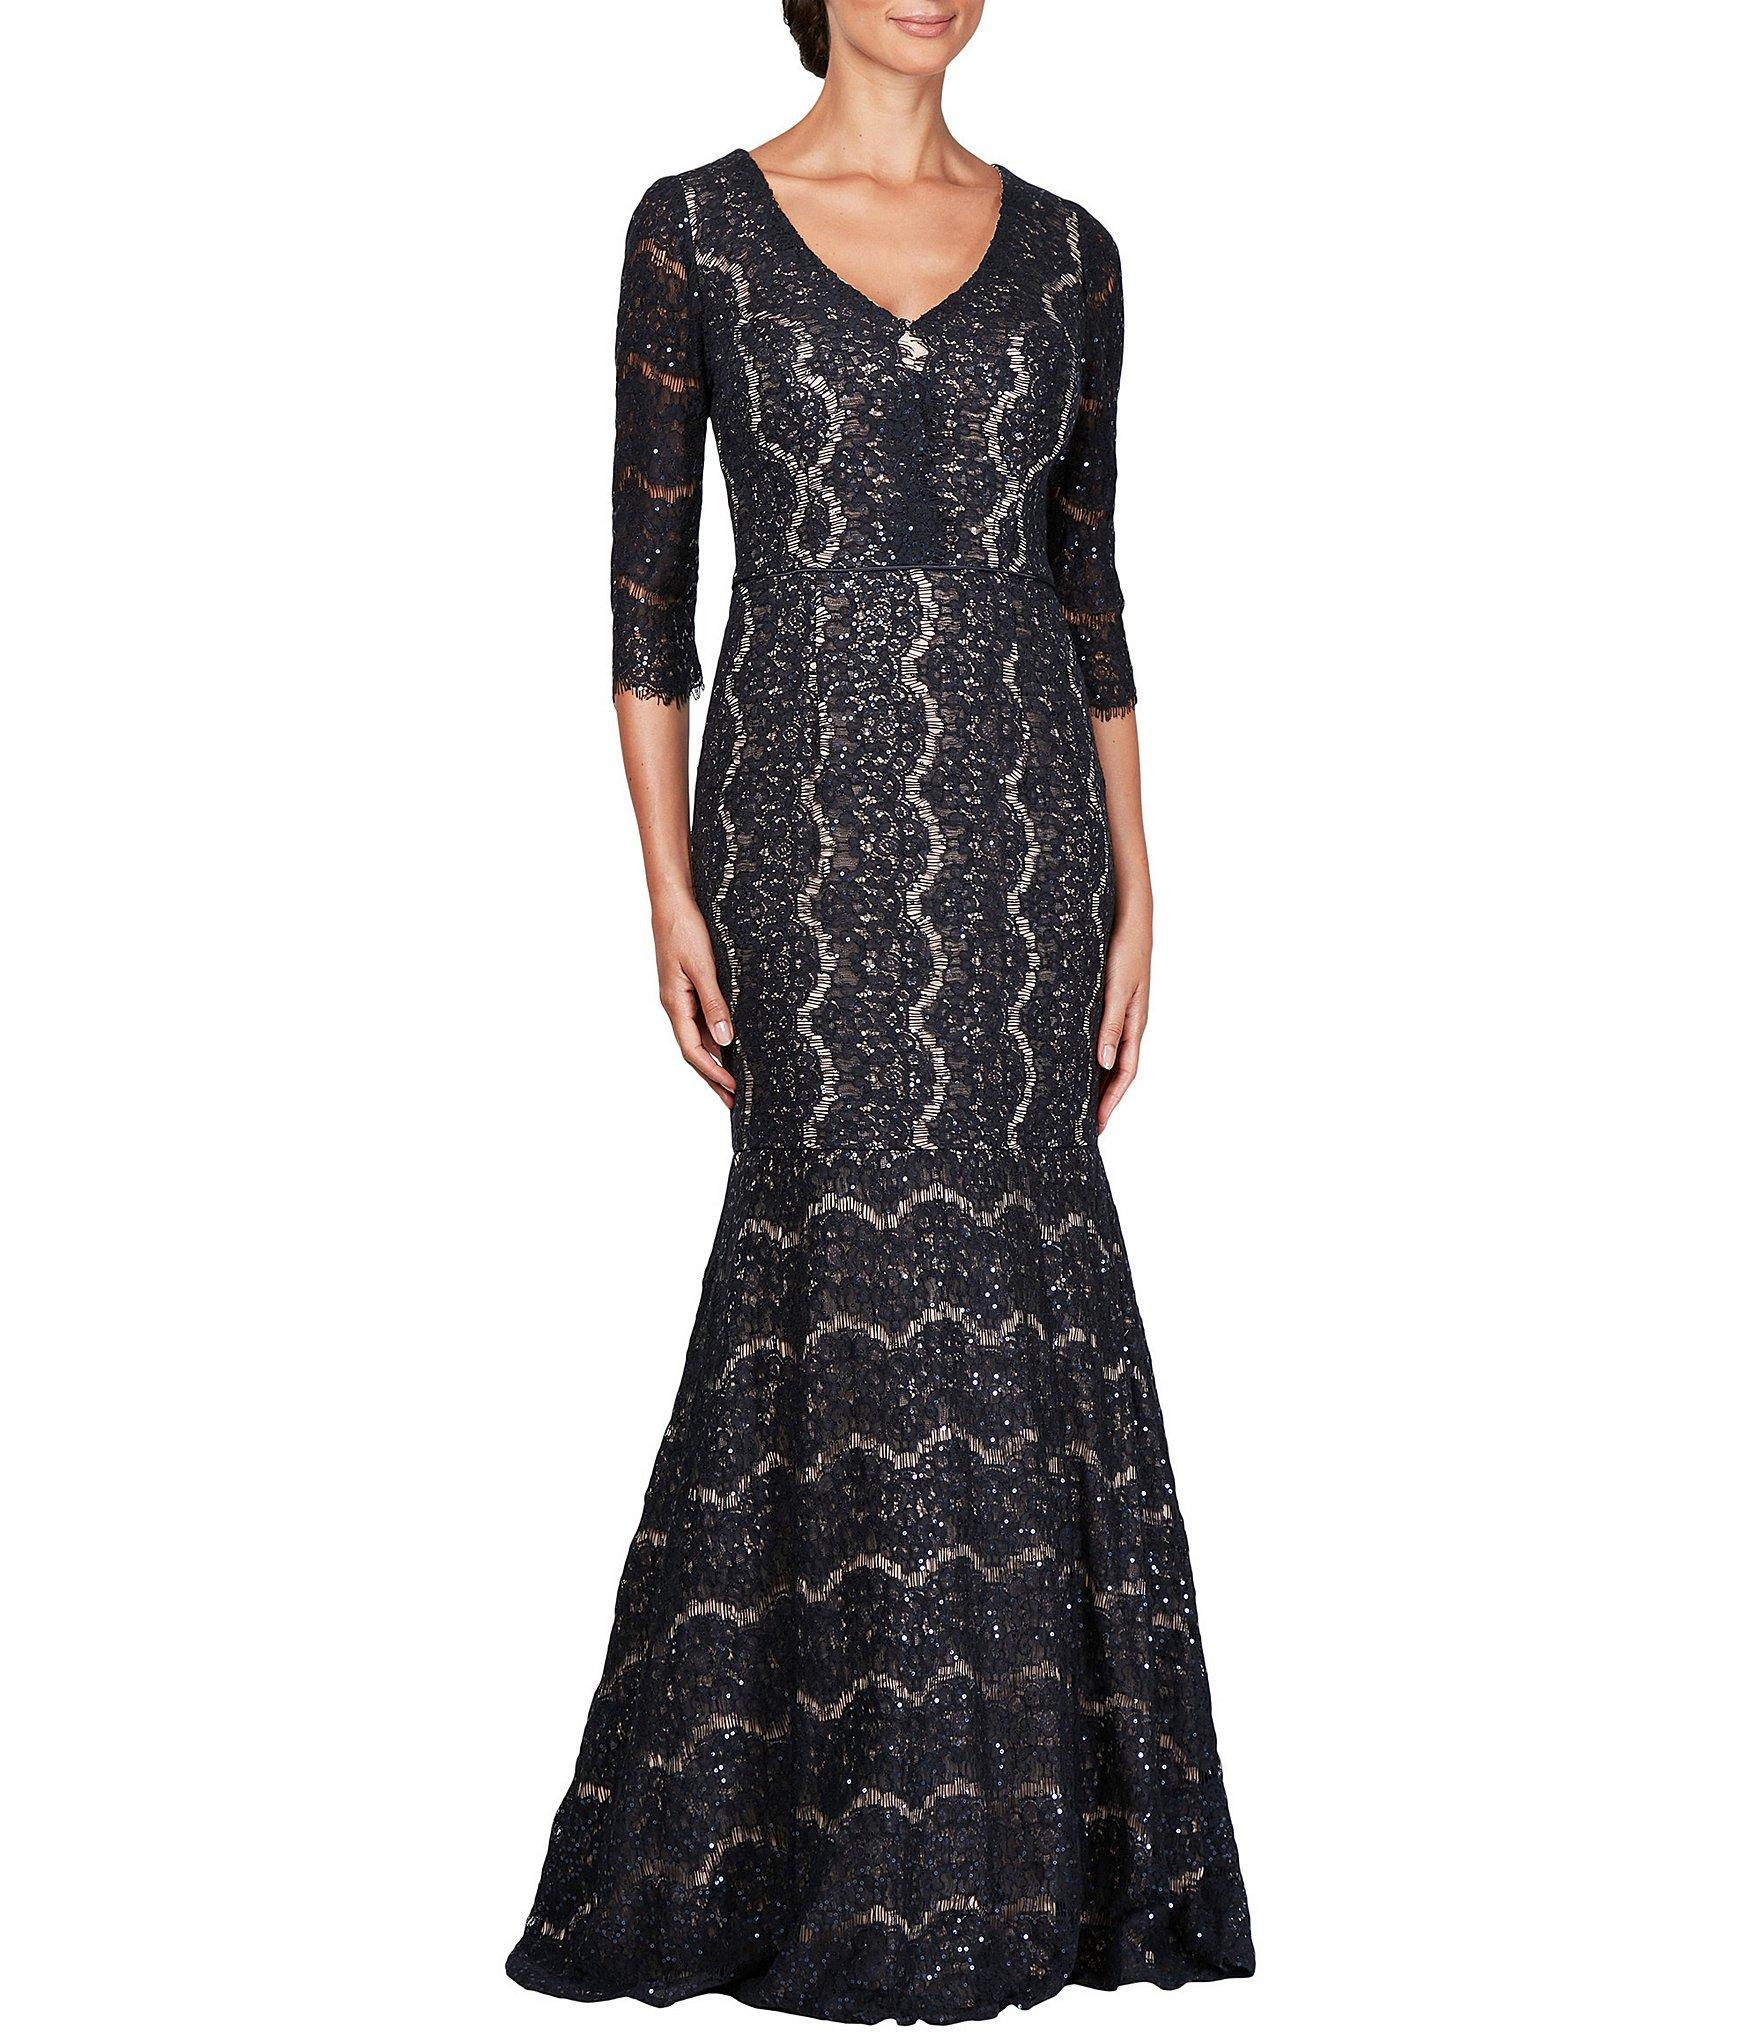 c61a0fa4899 Lyst - Alex Evenings V-neck 3 4 Sleeve Sequin Lace Gown